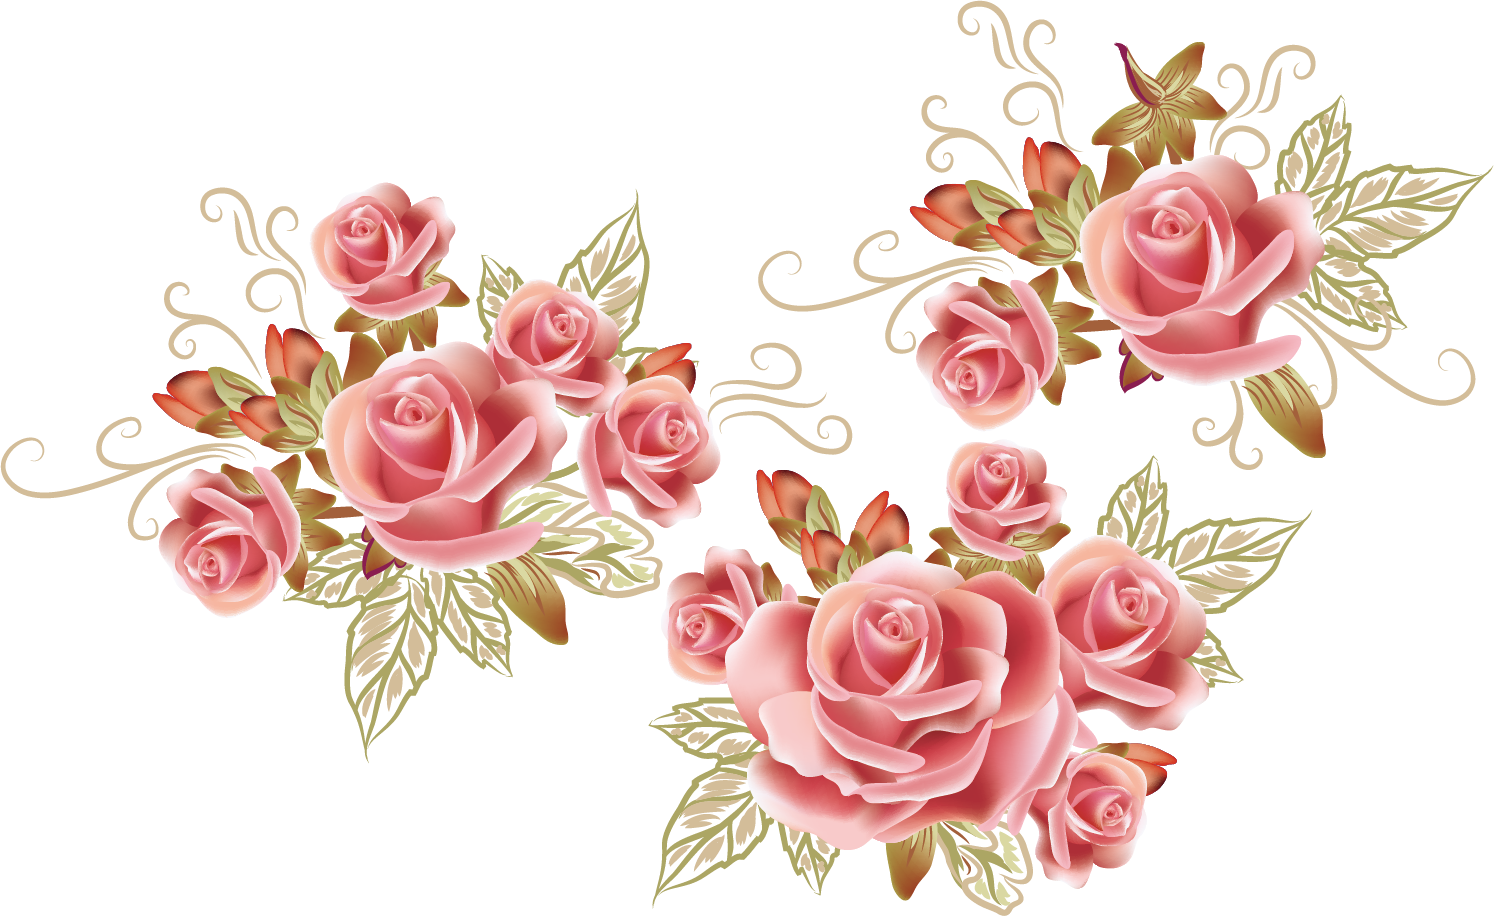 Flower png drawing. Rose pattern creative transprent